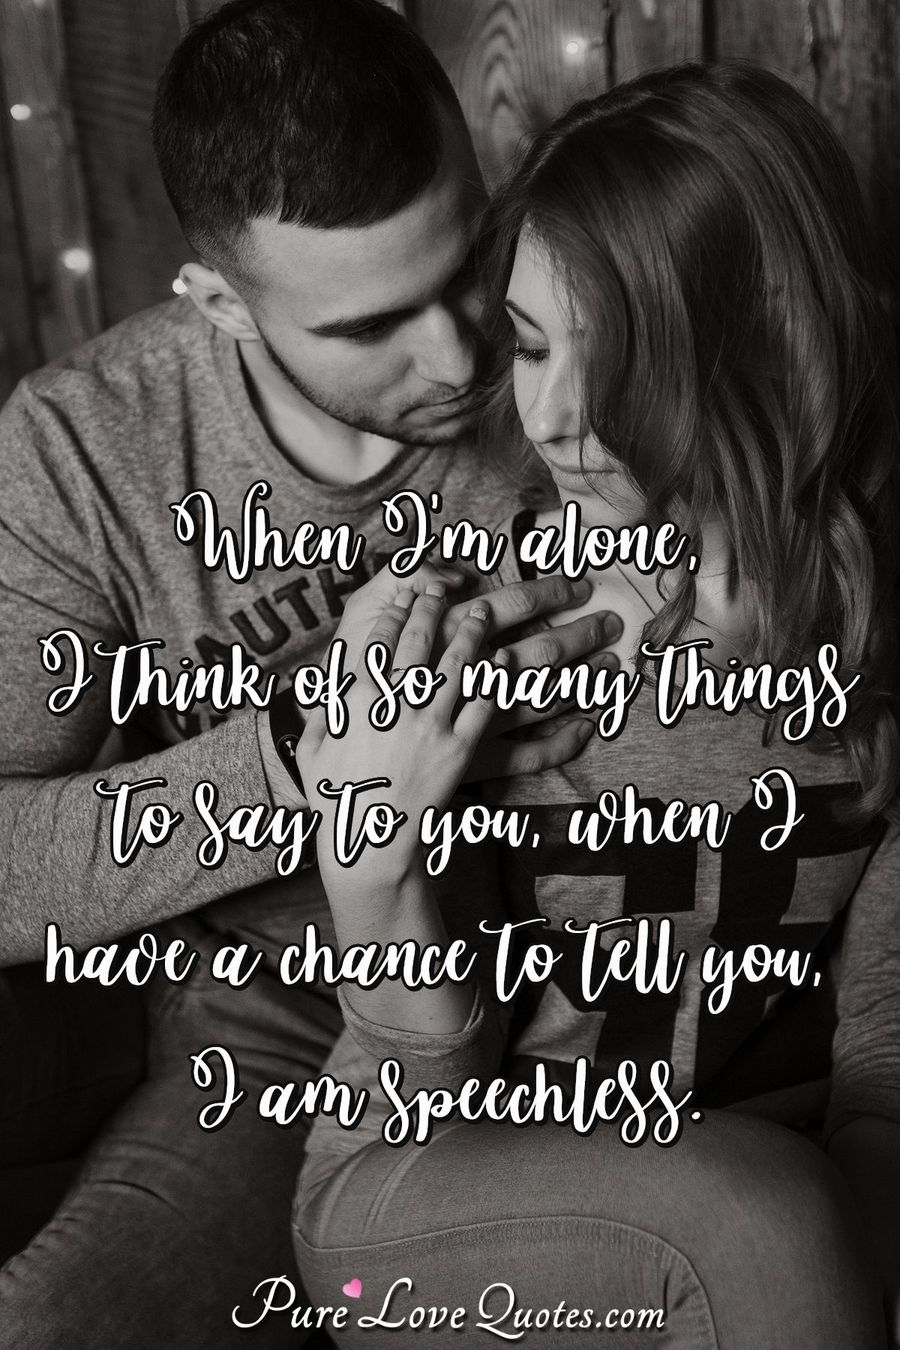 When I'm alone, I think of so many things to say to you. When I have a chance to tell you, I am speechless.